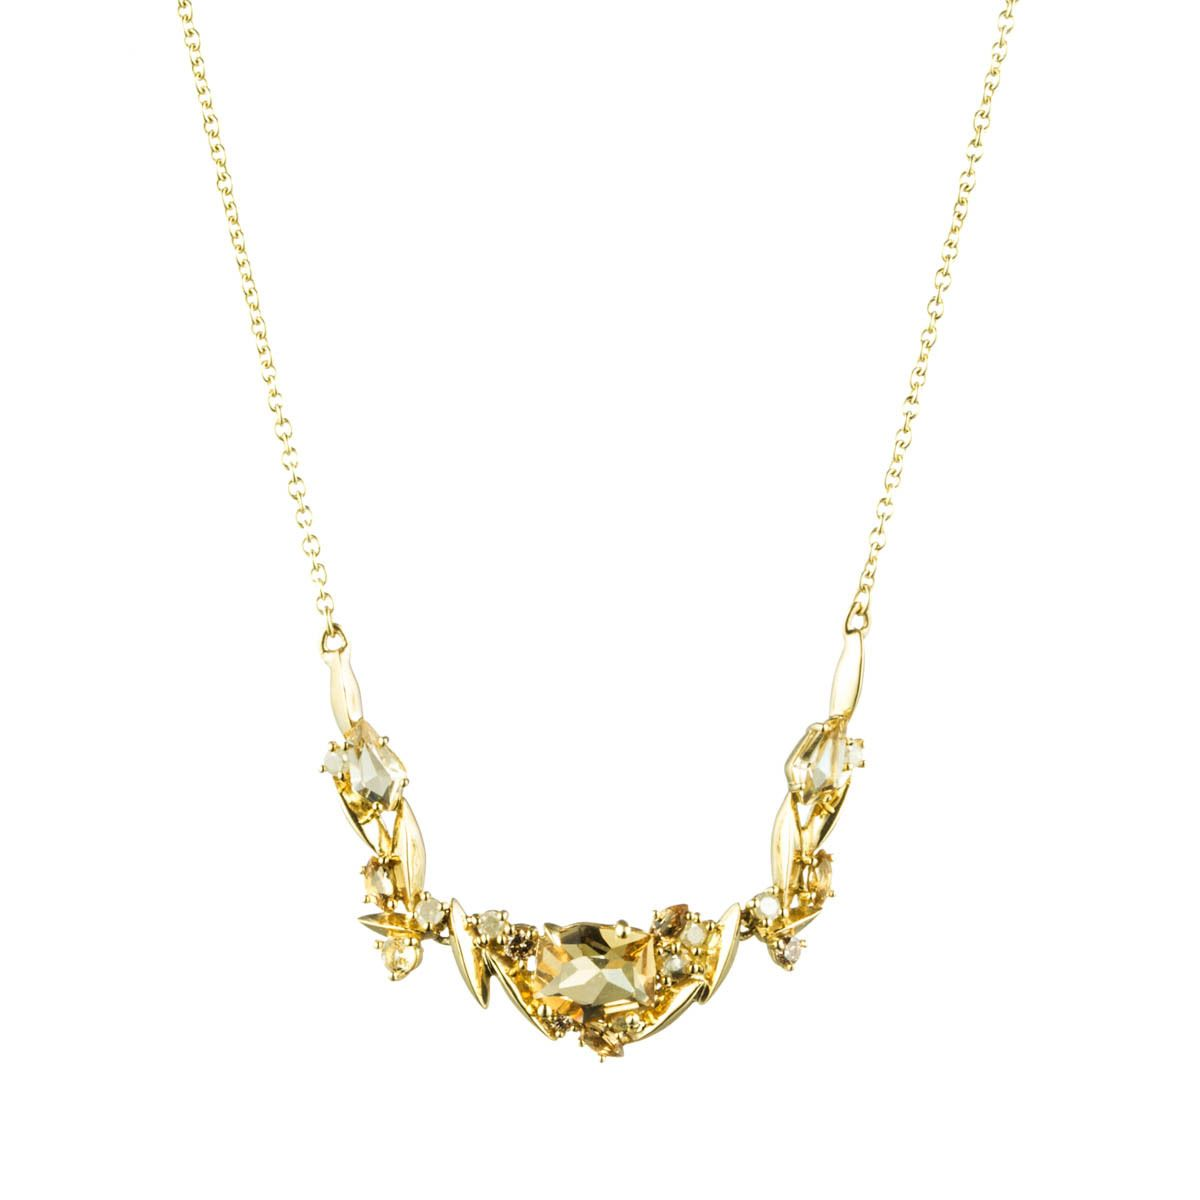 women p bittar necklace with gold alexis pendant txncbggnsi